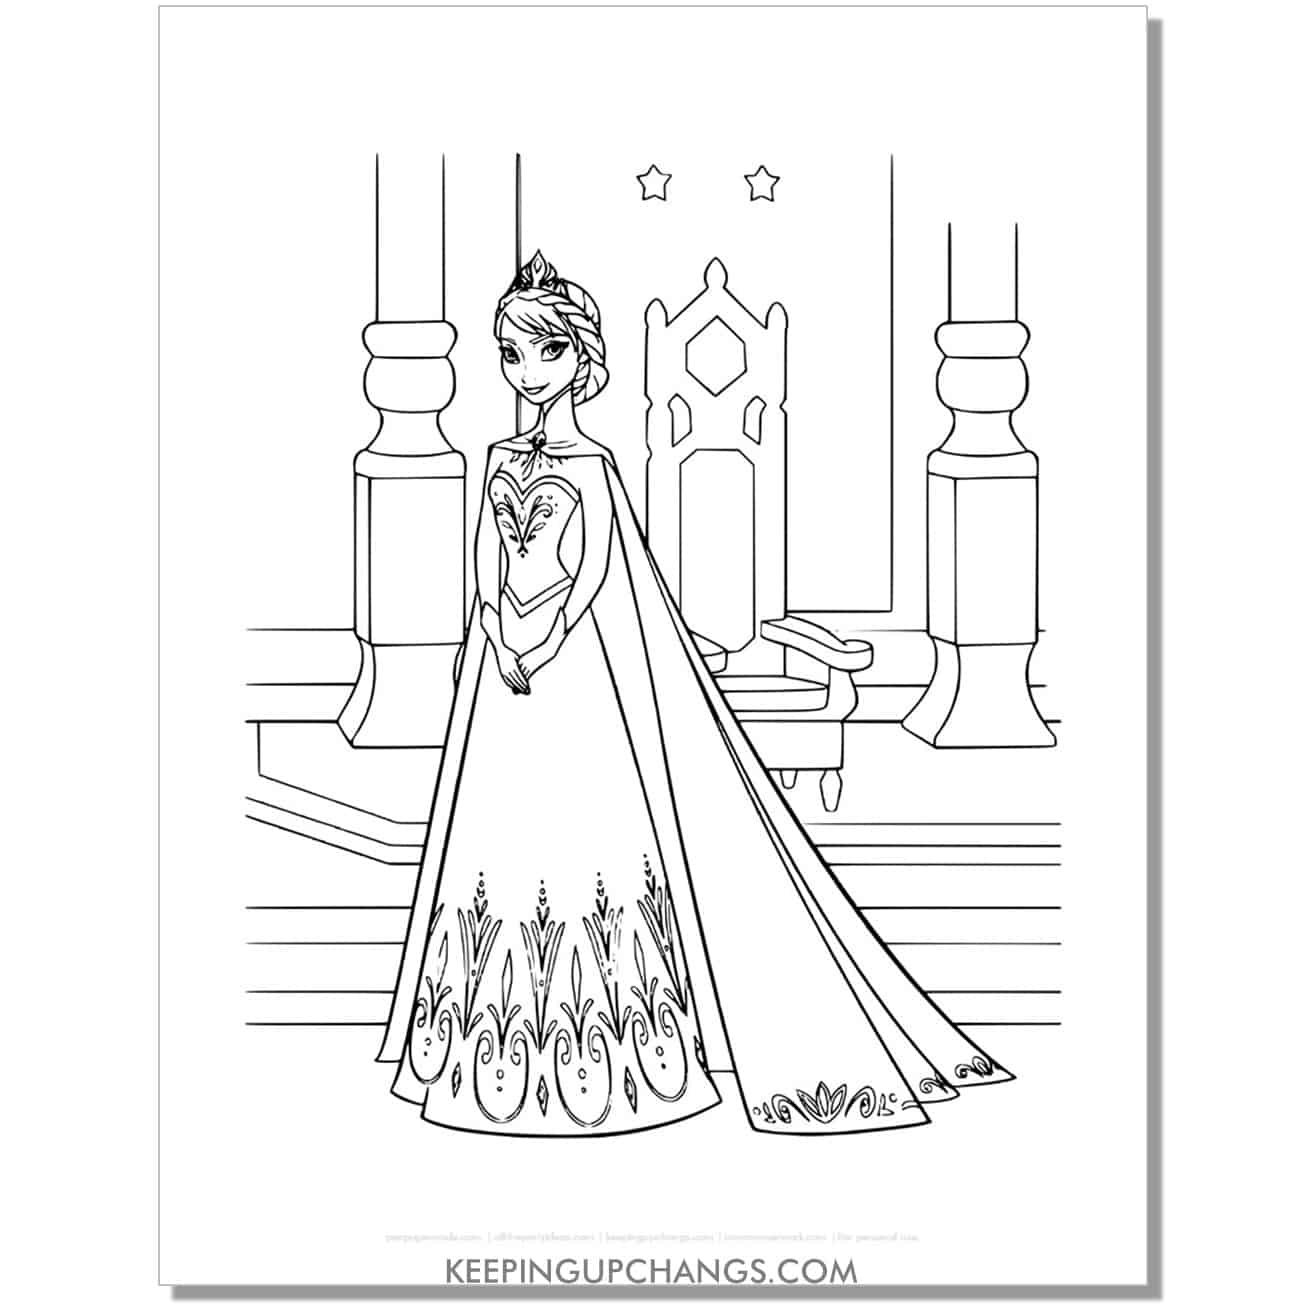 free elsa ice queen frozen coloring page.